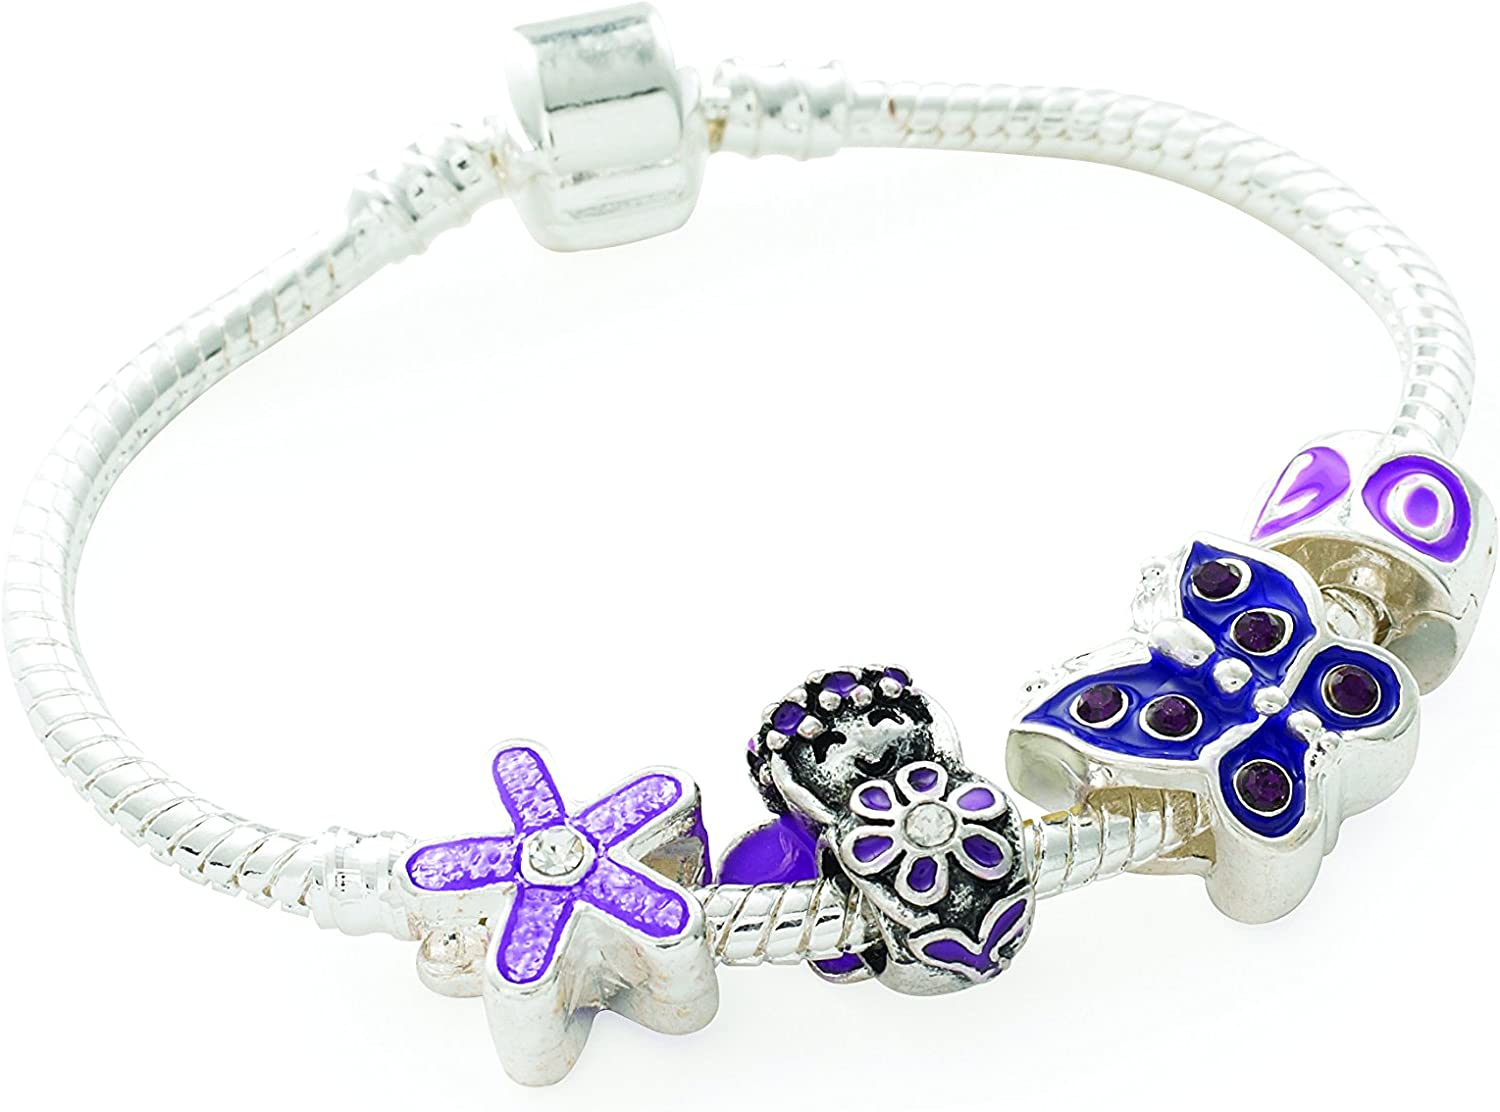 Liberty Charms 'Purple Fairy' Silver Bracelet. Max 77% OFF shipfree Plated Gift Charm